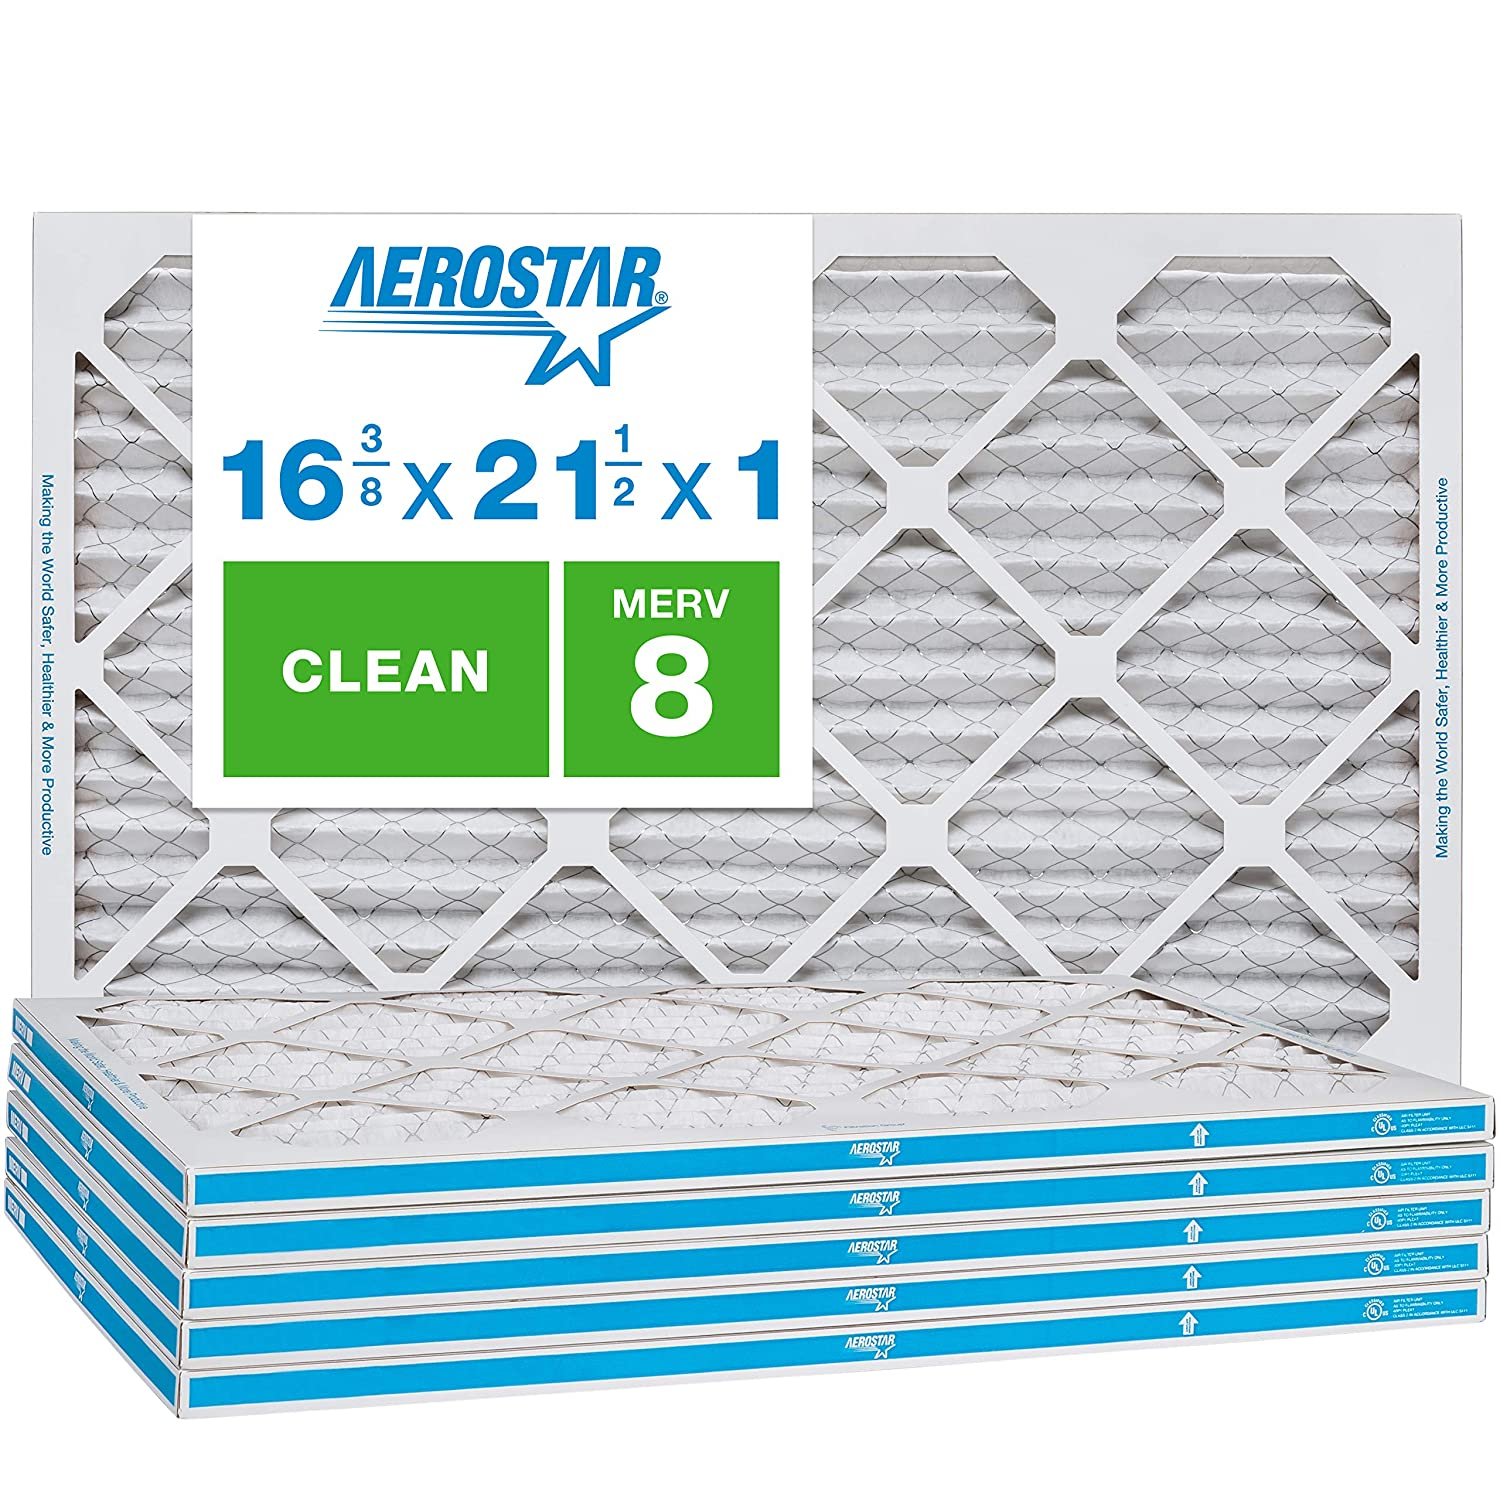 Aerostar Clean House 16 3/8x21 1/2x1 MERV 8 Pleated Air Filter, Made in the USA, 6-Pack